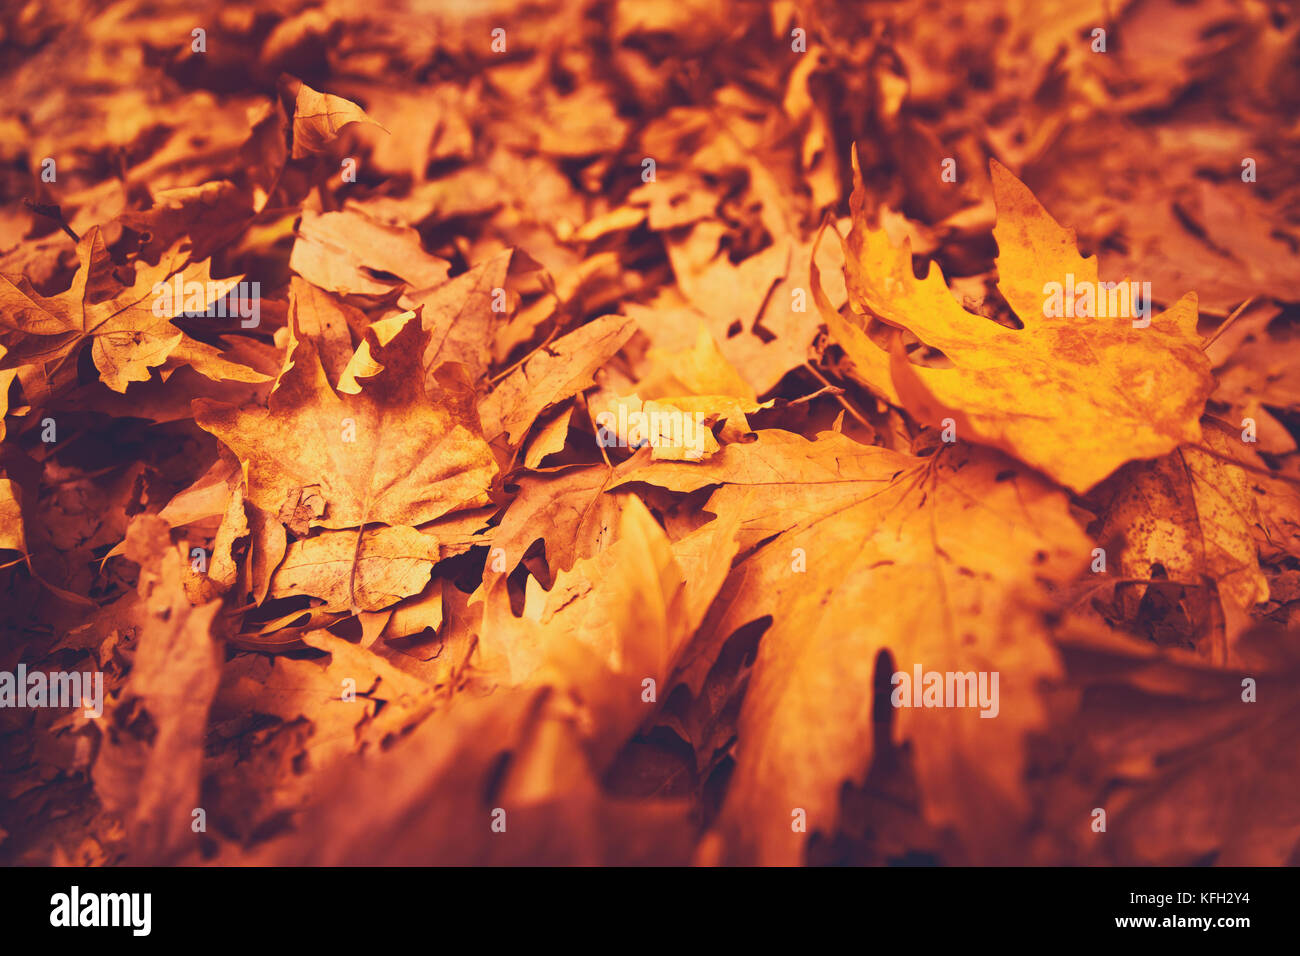 Autumn leaves background, dry orange maple foliage on the ground in the park, textured natural wallpaper, beautiful - Stock Image